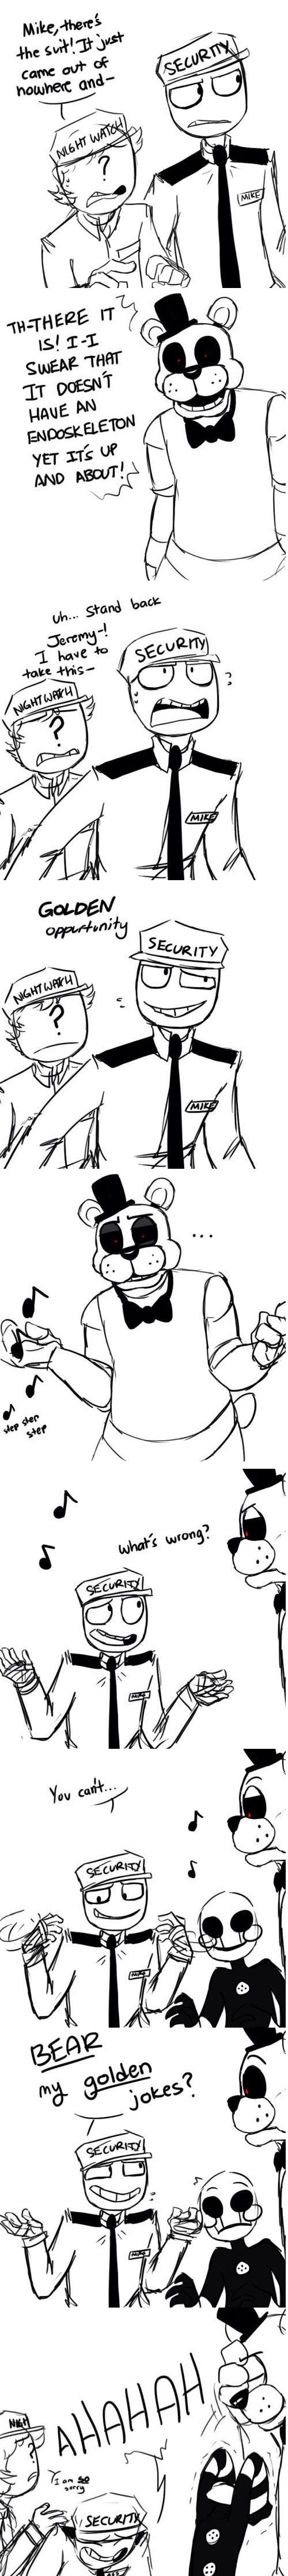 Marionette is gonna tear his own face off! <<<<< wouldn't you too if you had to listen to Mike's puns